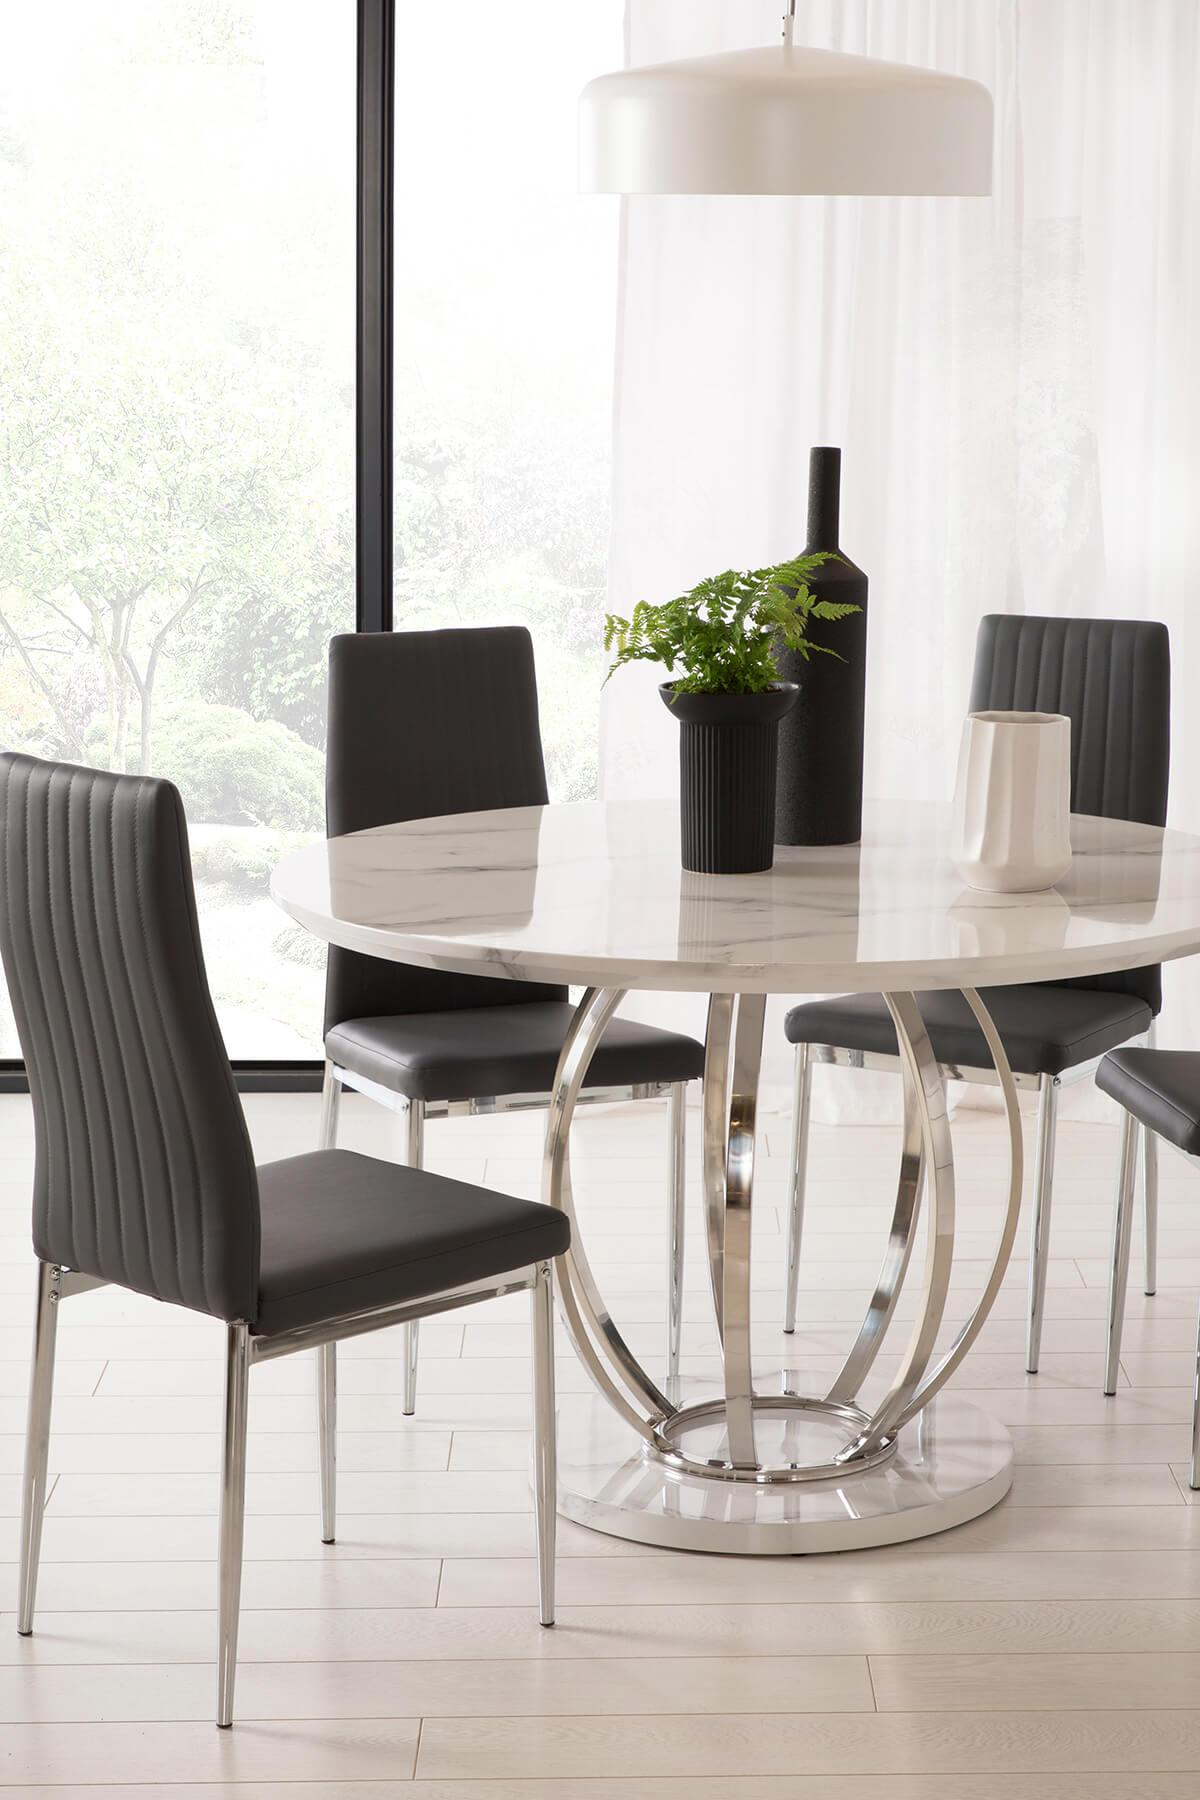 Savoy Round White Marble and Chrome Dining Table - with 4 Leon Grey Chairs